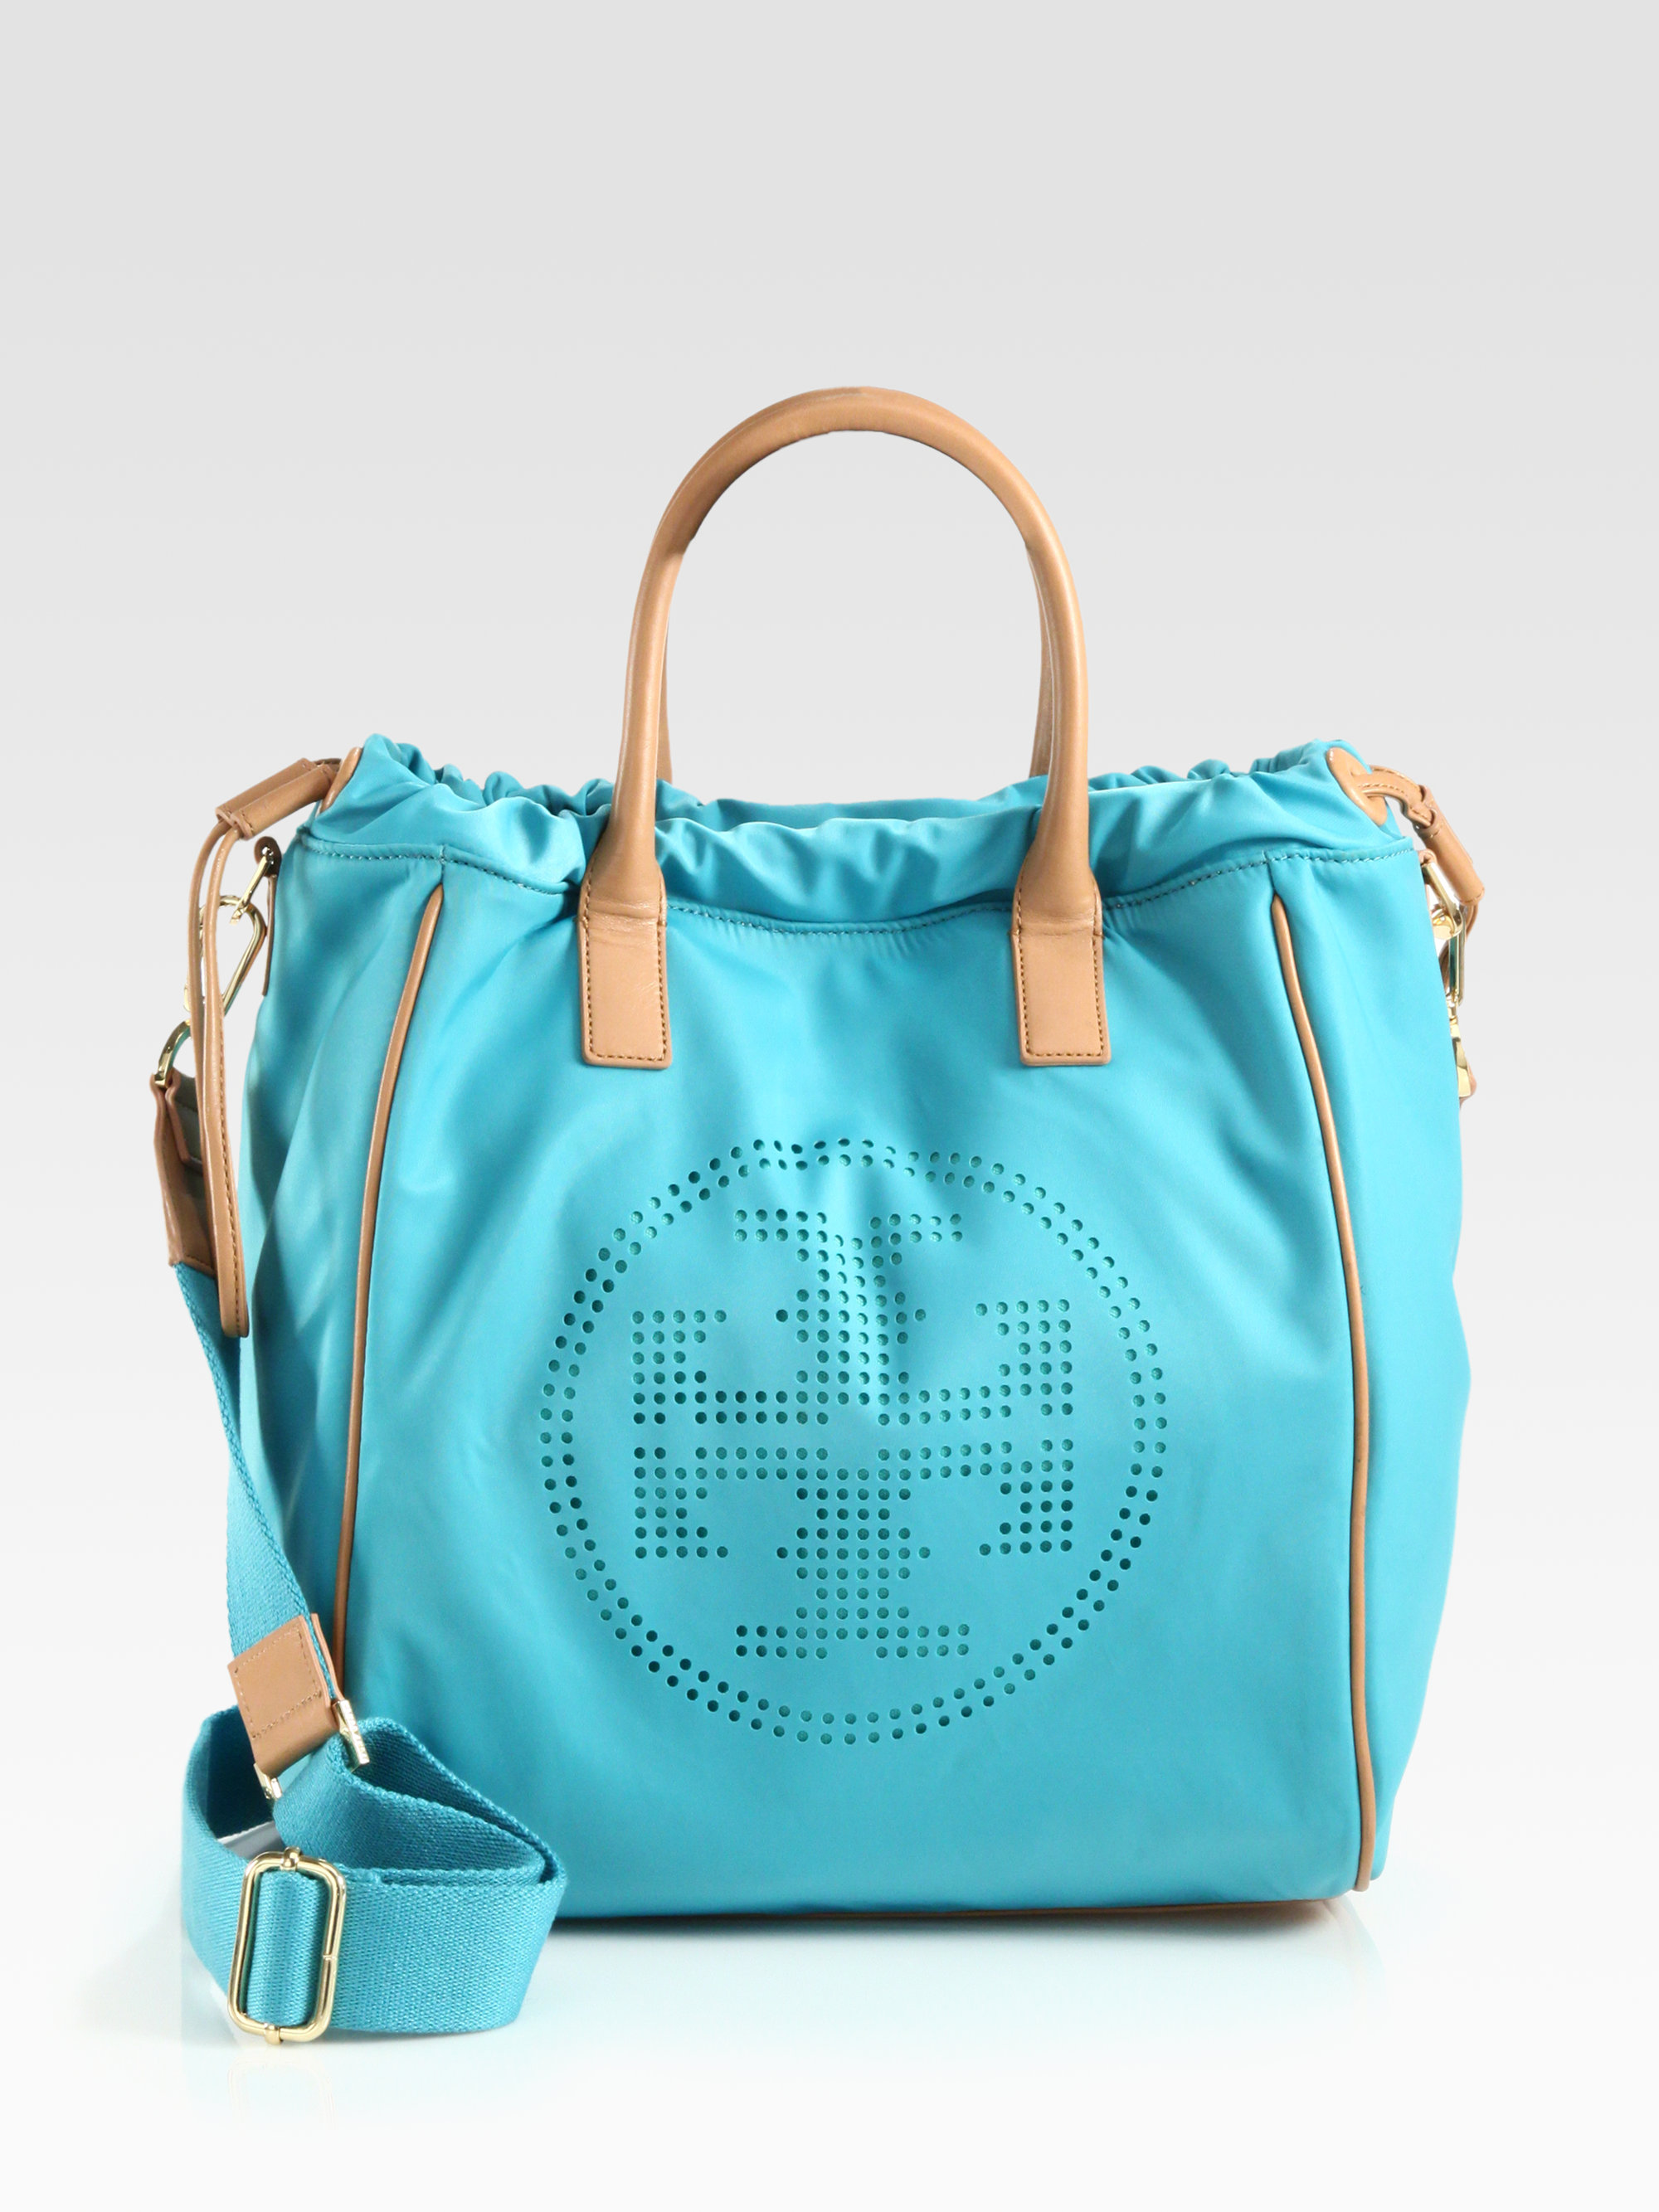 2ffa5f5761cd Lyst - Tory Burch Perforated Nylon Drawstring Tote in Blue